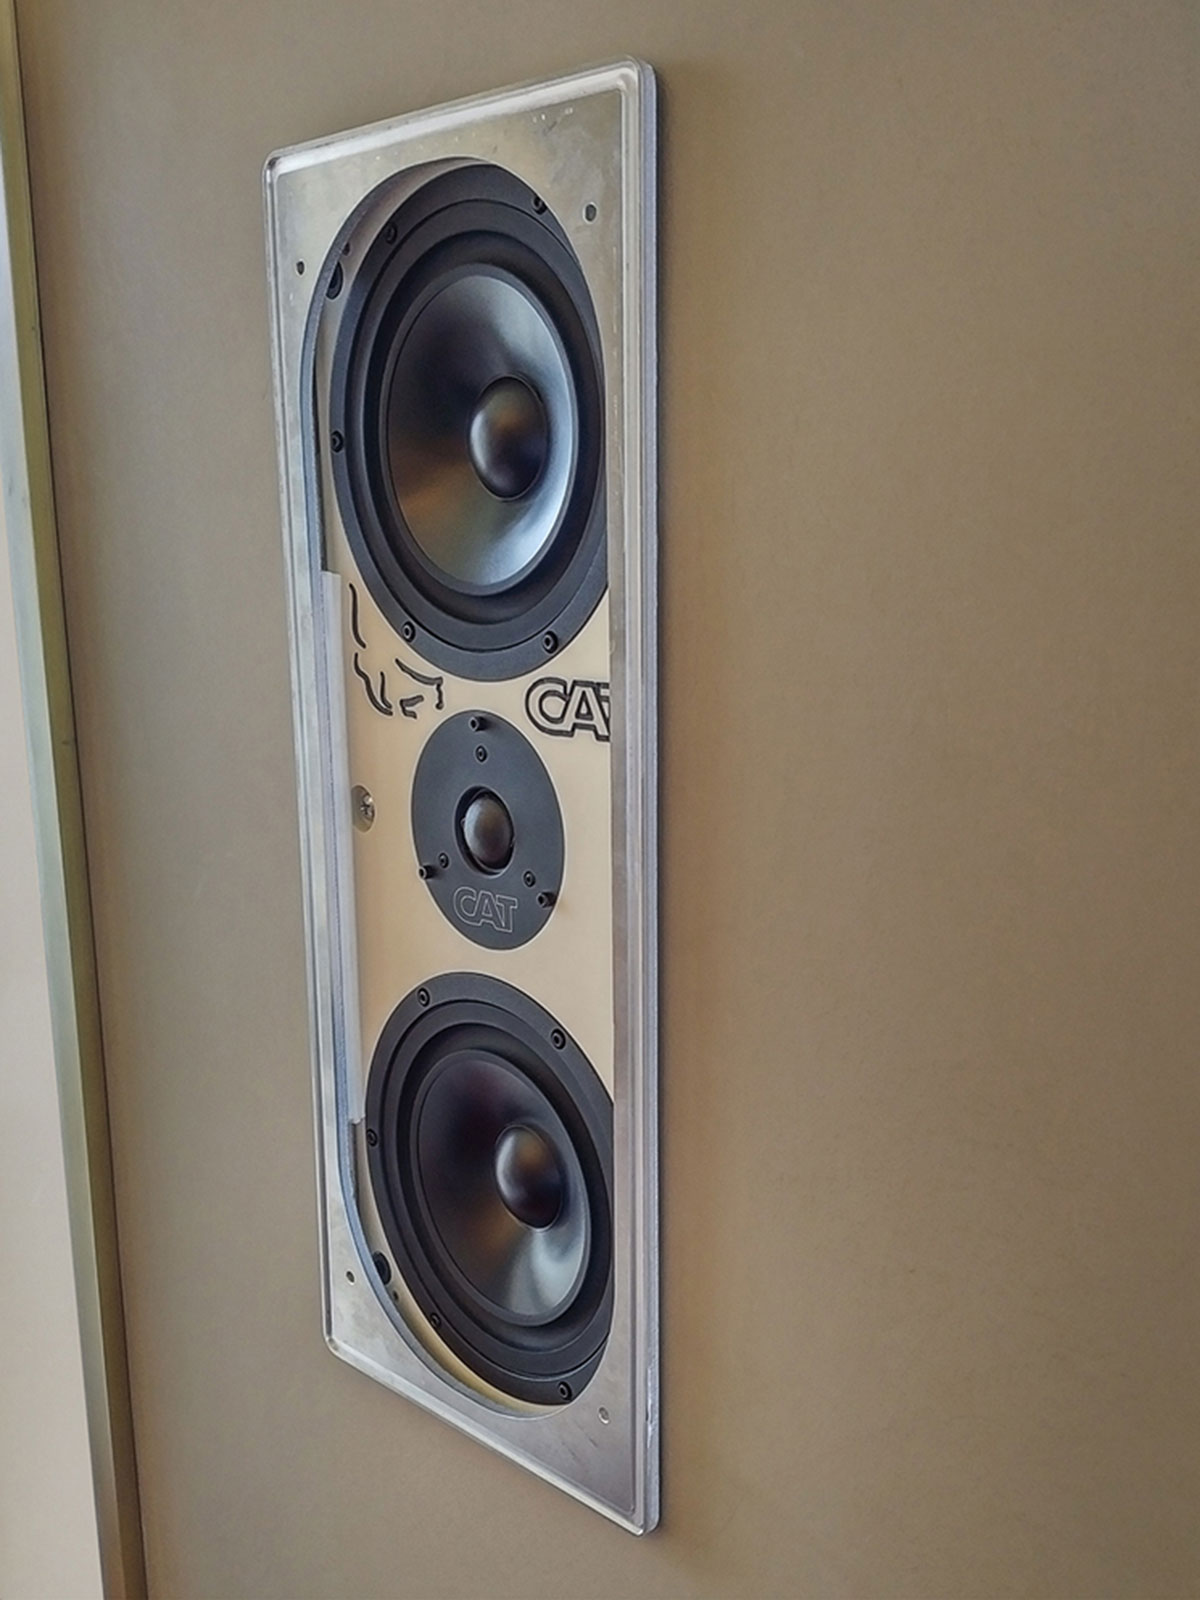 speakers, in-wall speakers, CAT, california audio technology